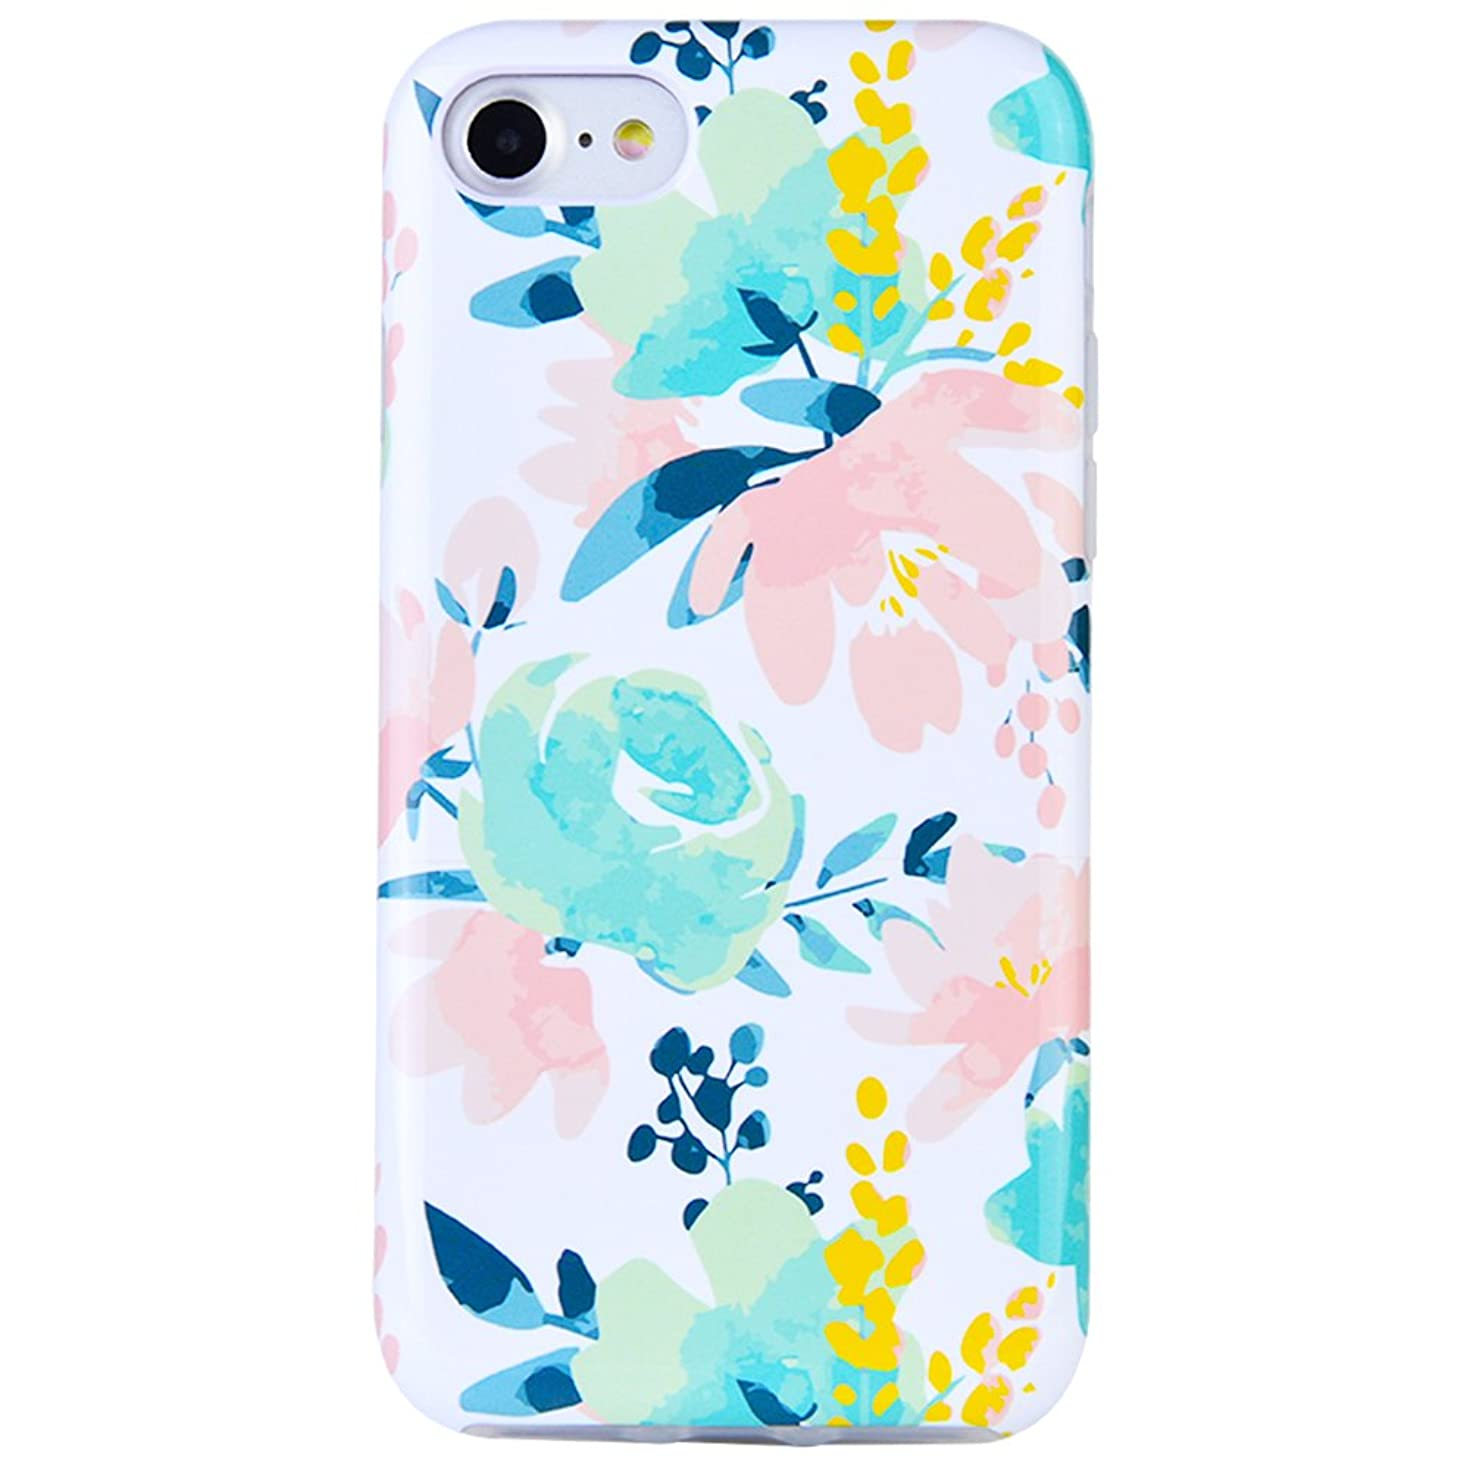 Dimaka Case for iPhone 7 Case, iPhone 8 Case for Girls, Cute Floral Leef Flower Pattern Protective Case, 2 Layer Hybrid Drop Proof Cover [Retro Design] for iPhone 7 and 8 (116)